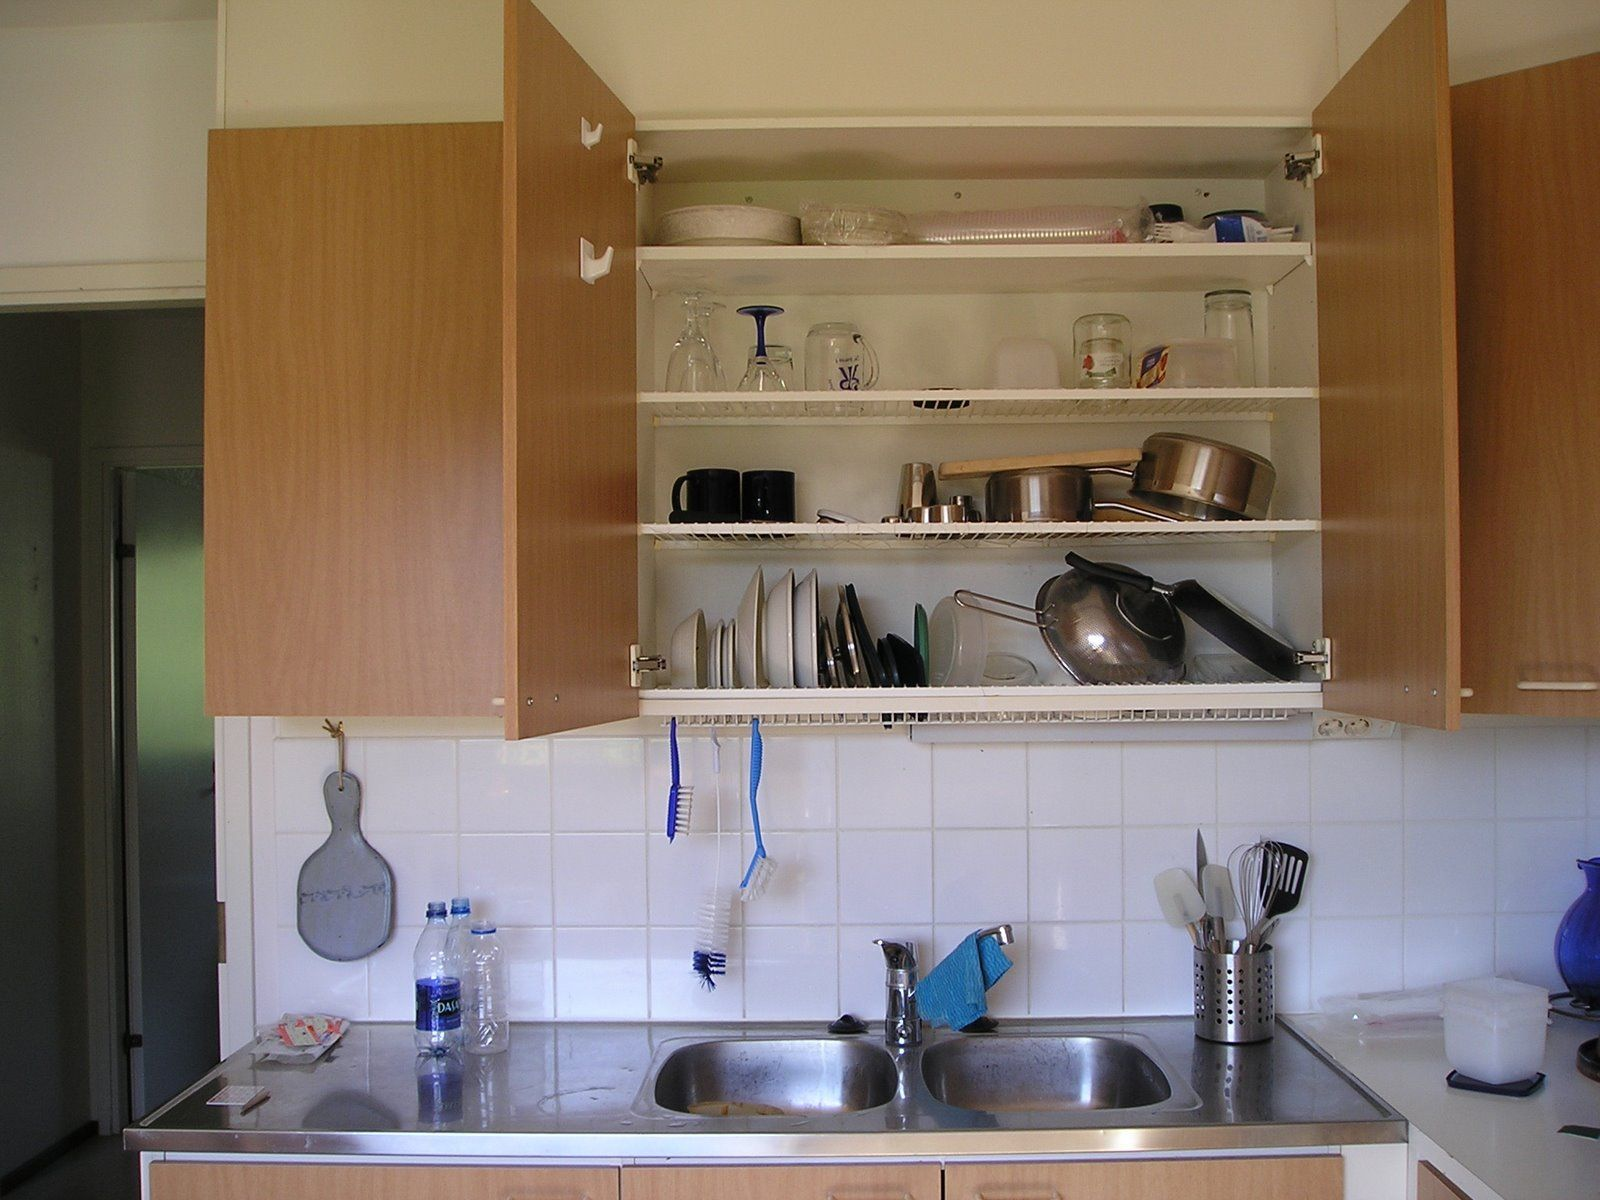 Finnish Concealed Dish Drying Cabinet Or Astiankuivauskaappi Better Than A Dish Rack Dish Rack Cabinet Dish Racks Dish Rack Drying